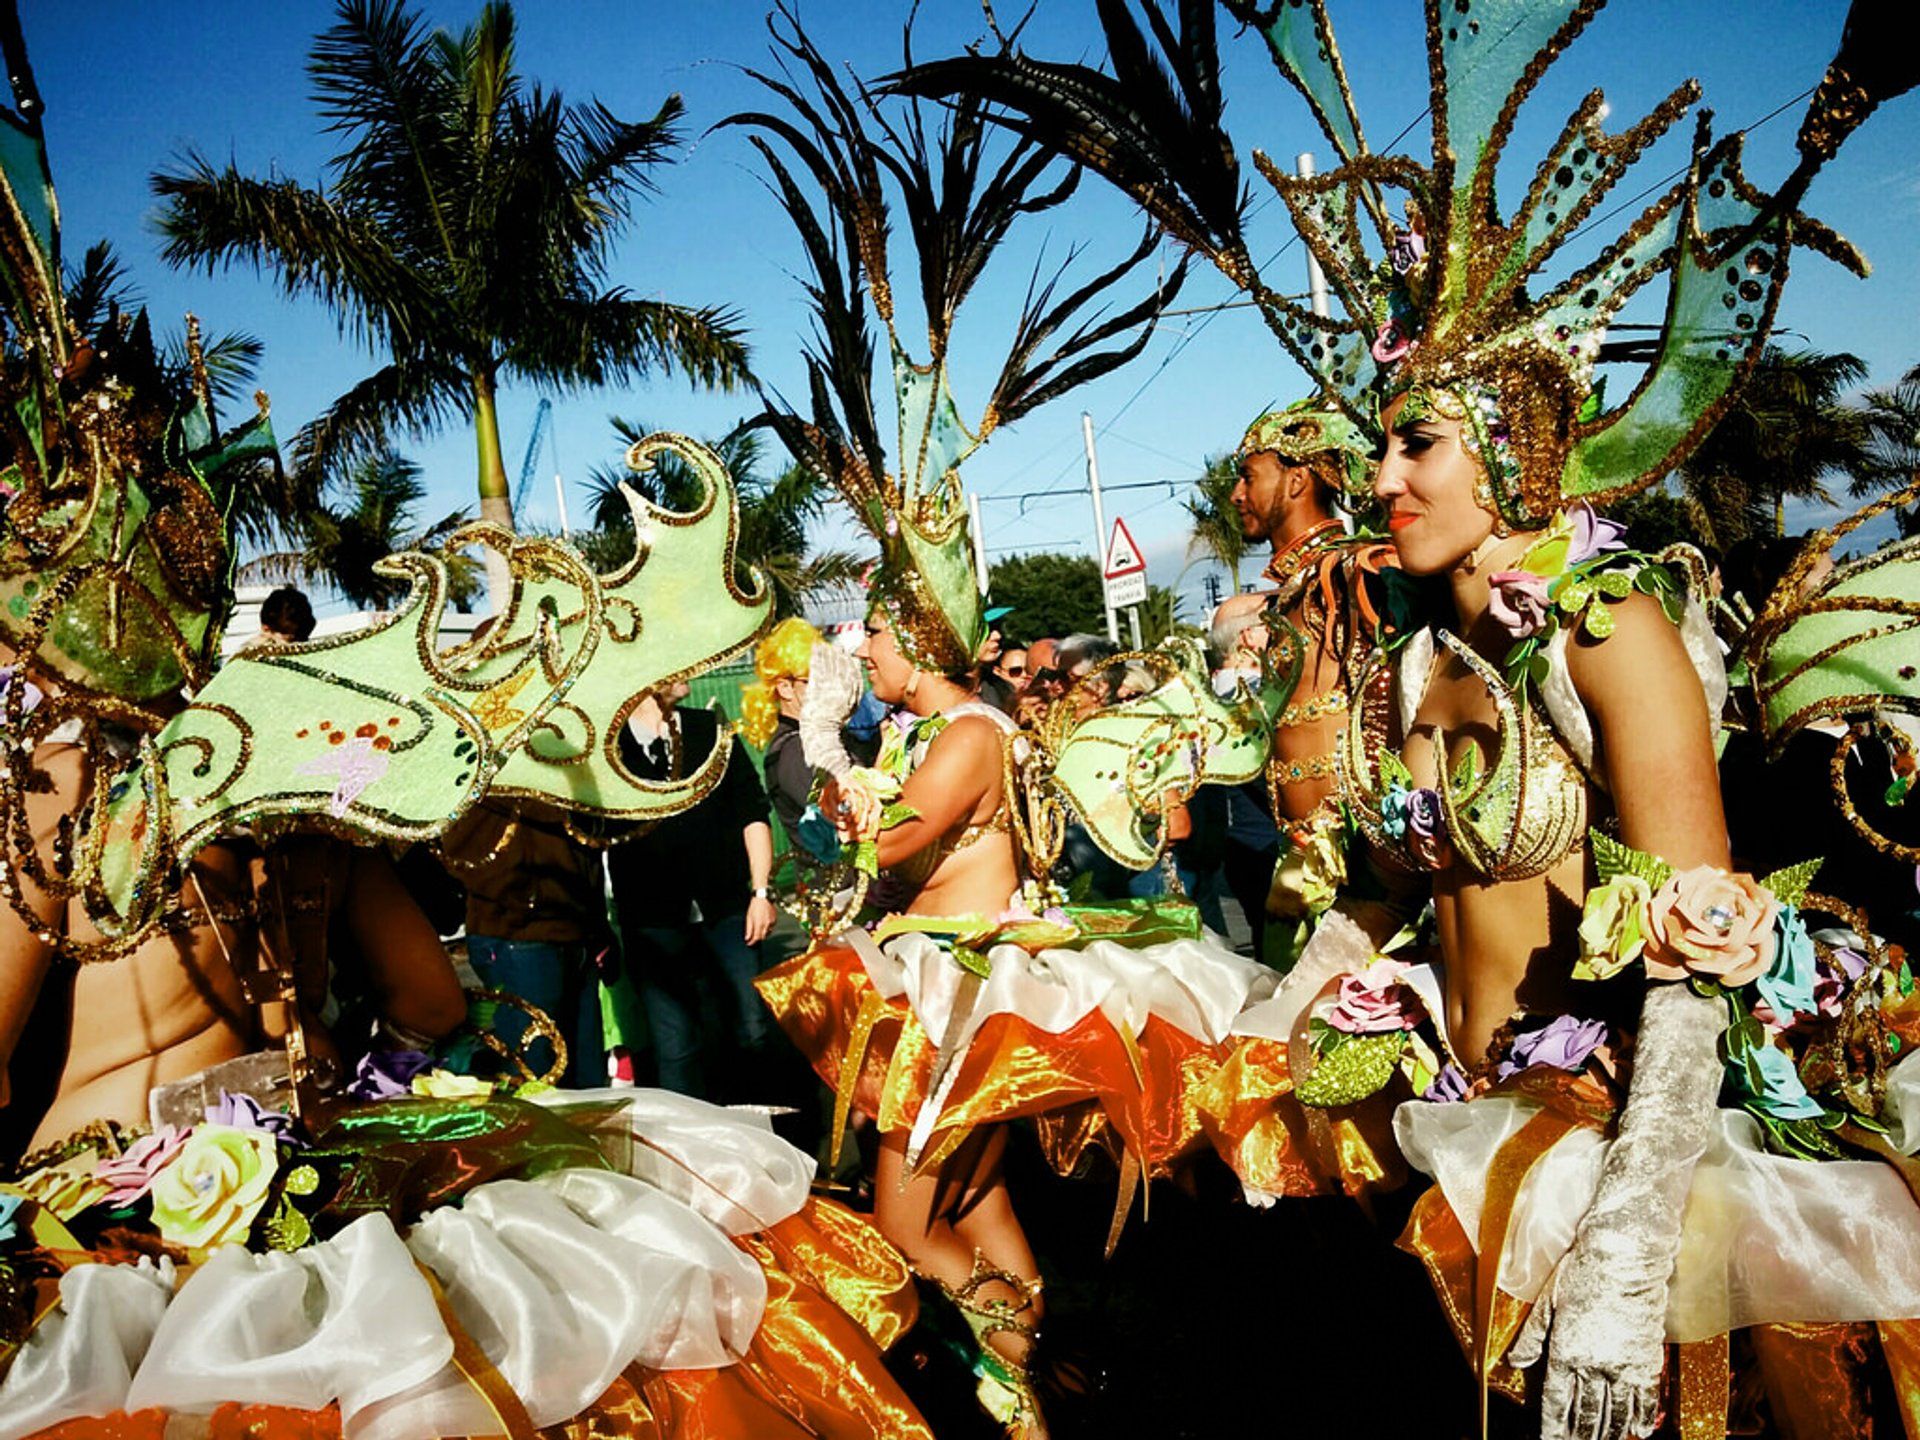 Santa Cruz de Tenerife Carnival in Canary Islands 2020 - Best Time